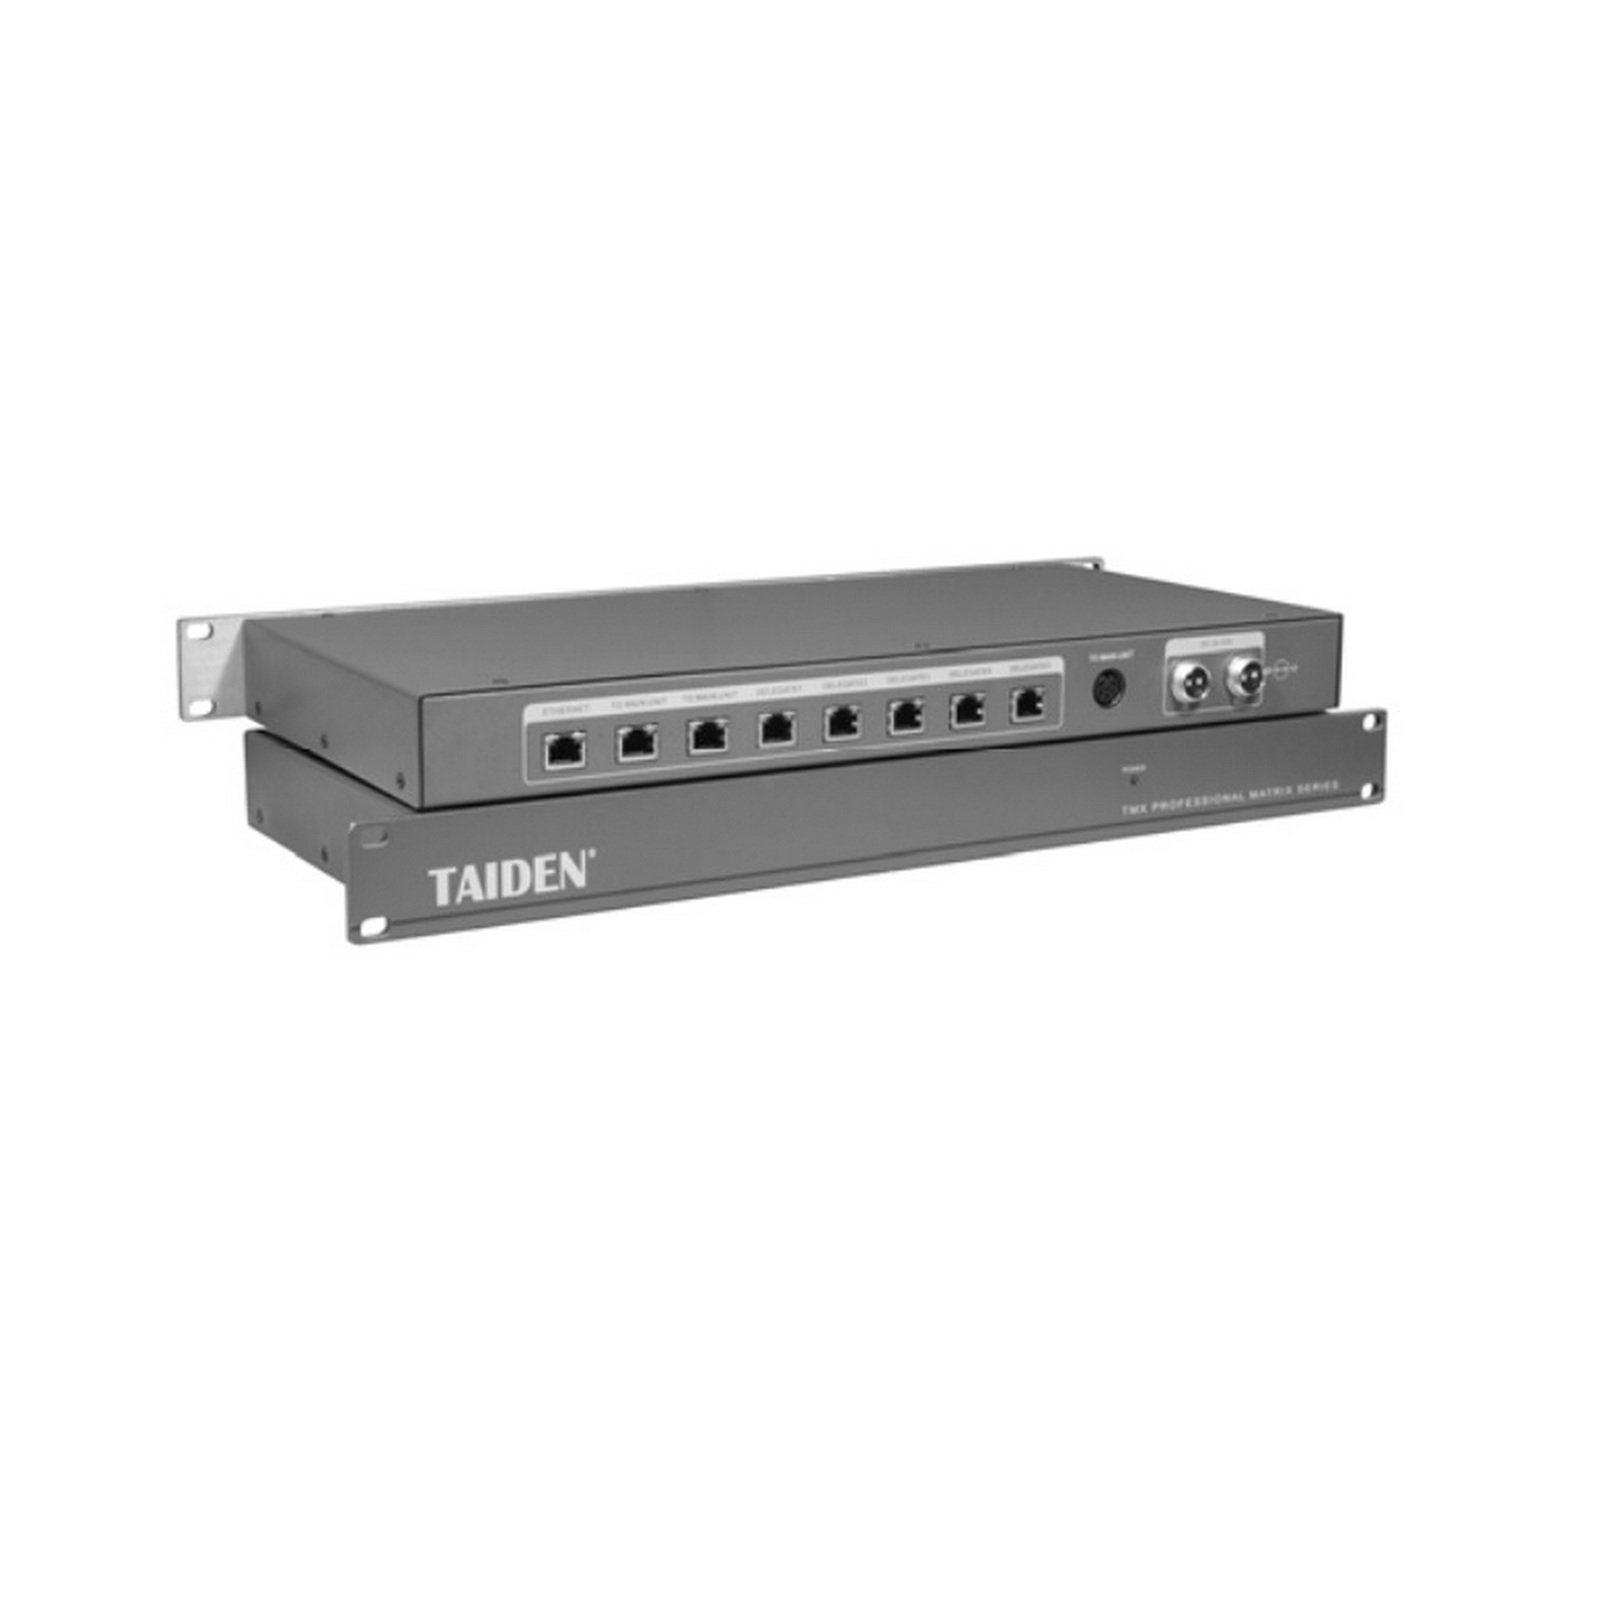 Media Vision HCS-8300KMX | Congress Gigabit Network Switcher